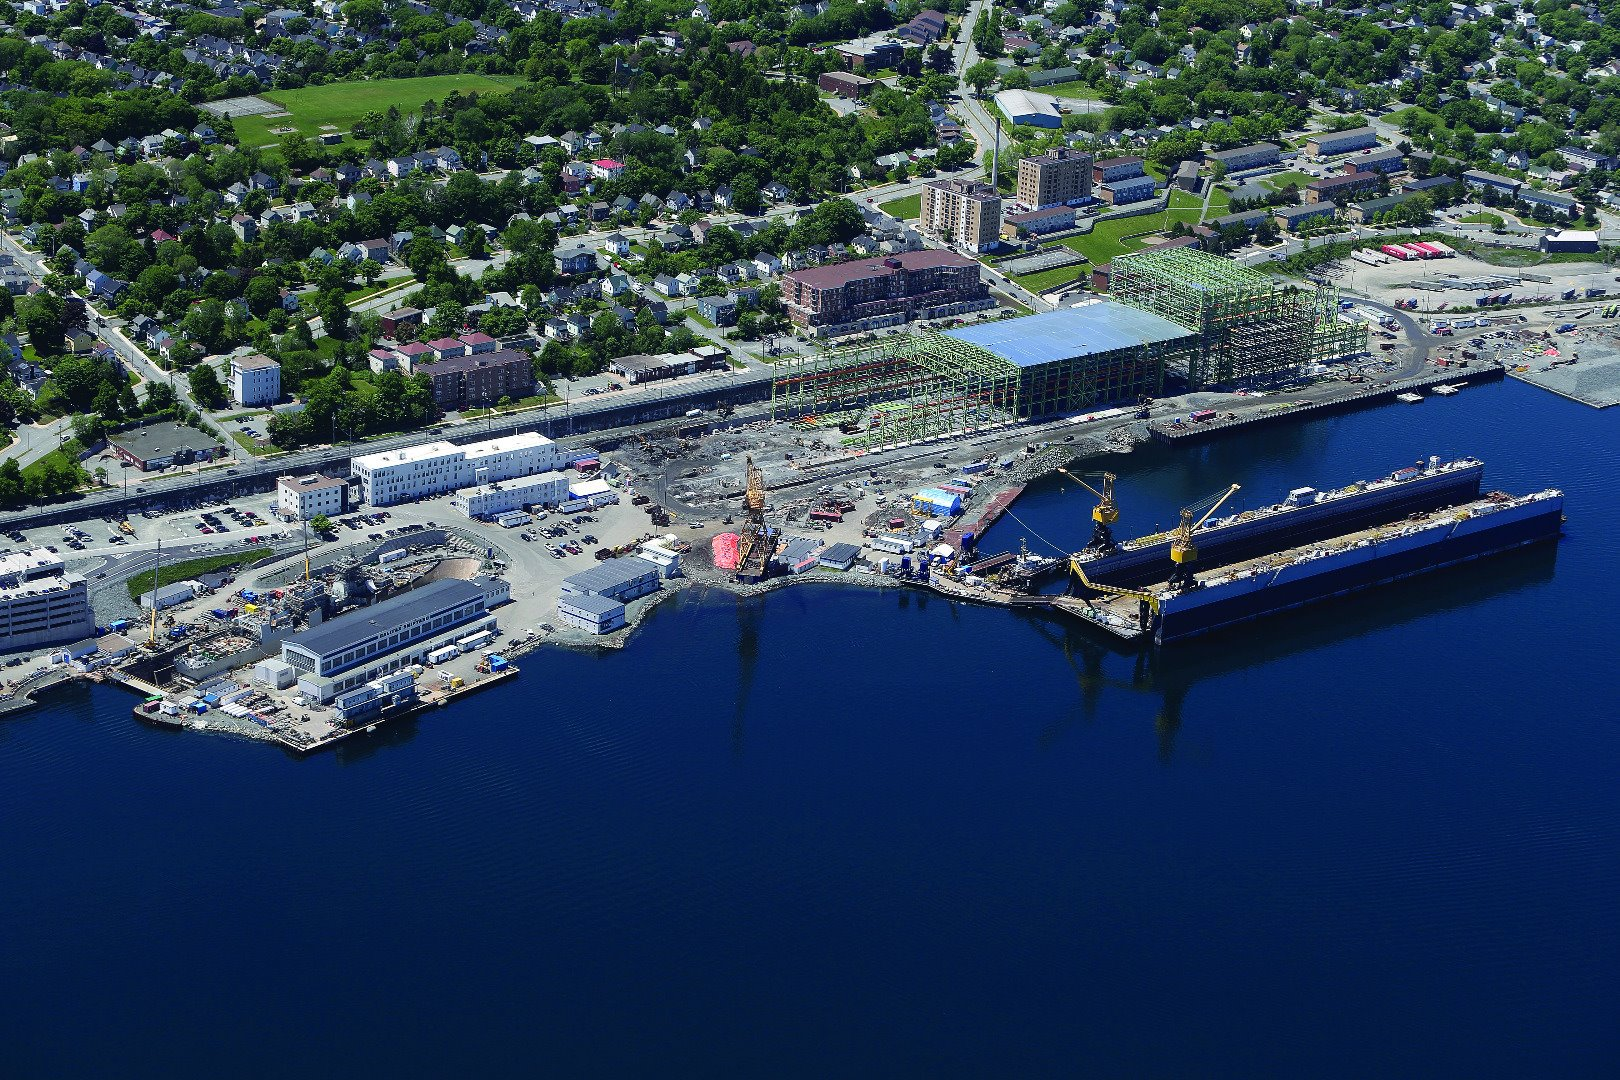 Aerial shot of the shipyard